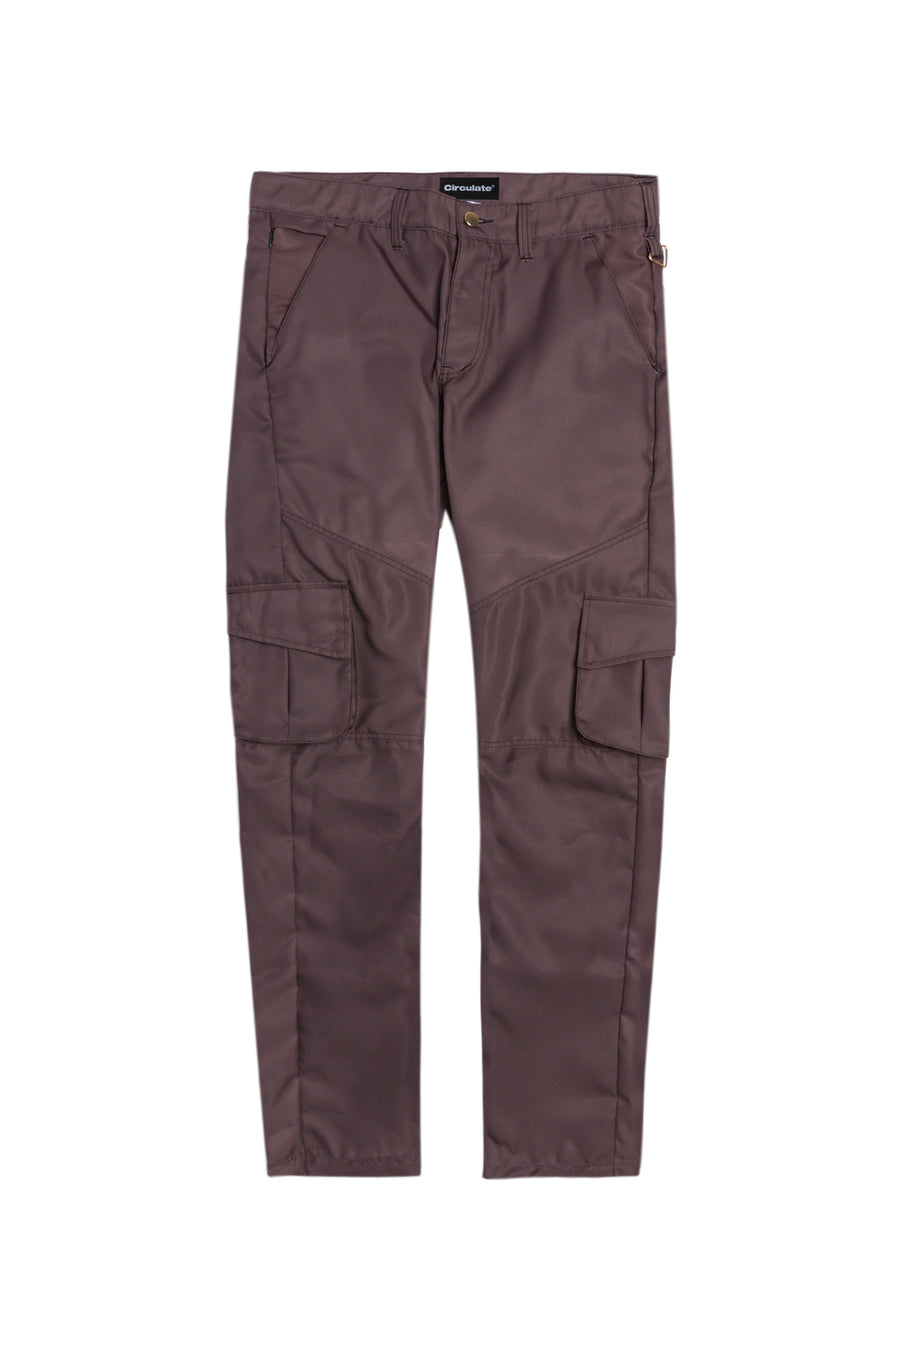 CITY CARGO PANTS - BROWN